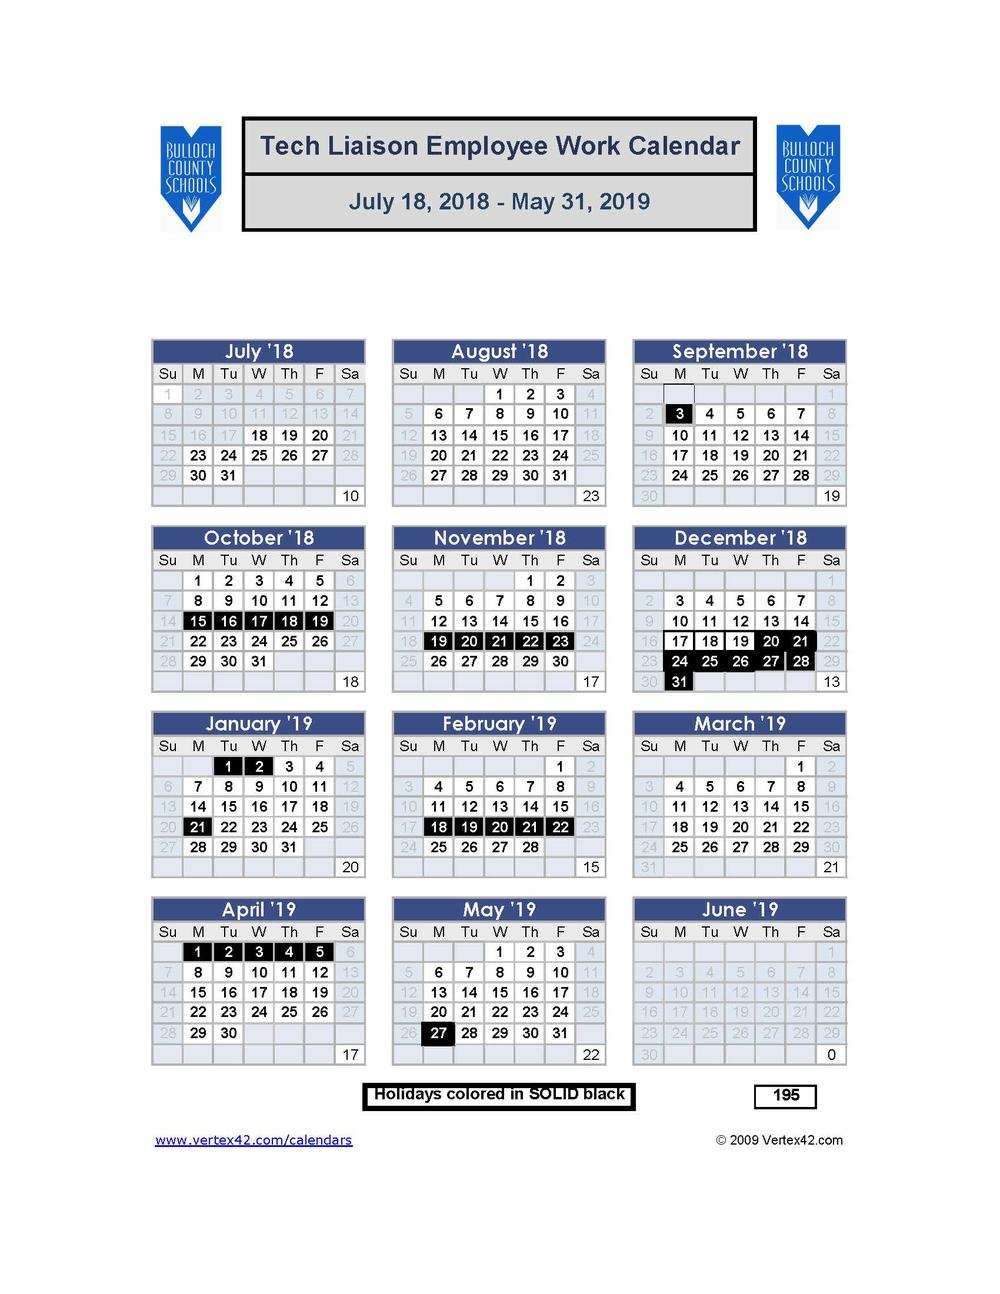 Technology Liaison Work Calendar